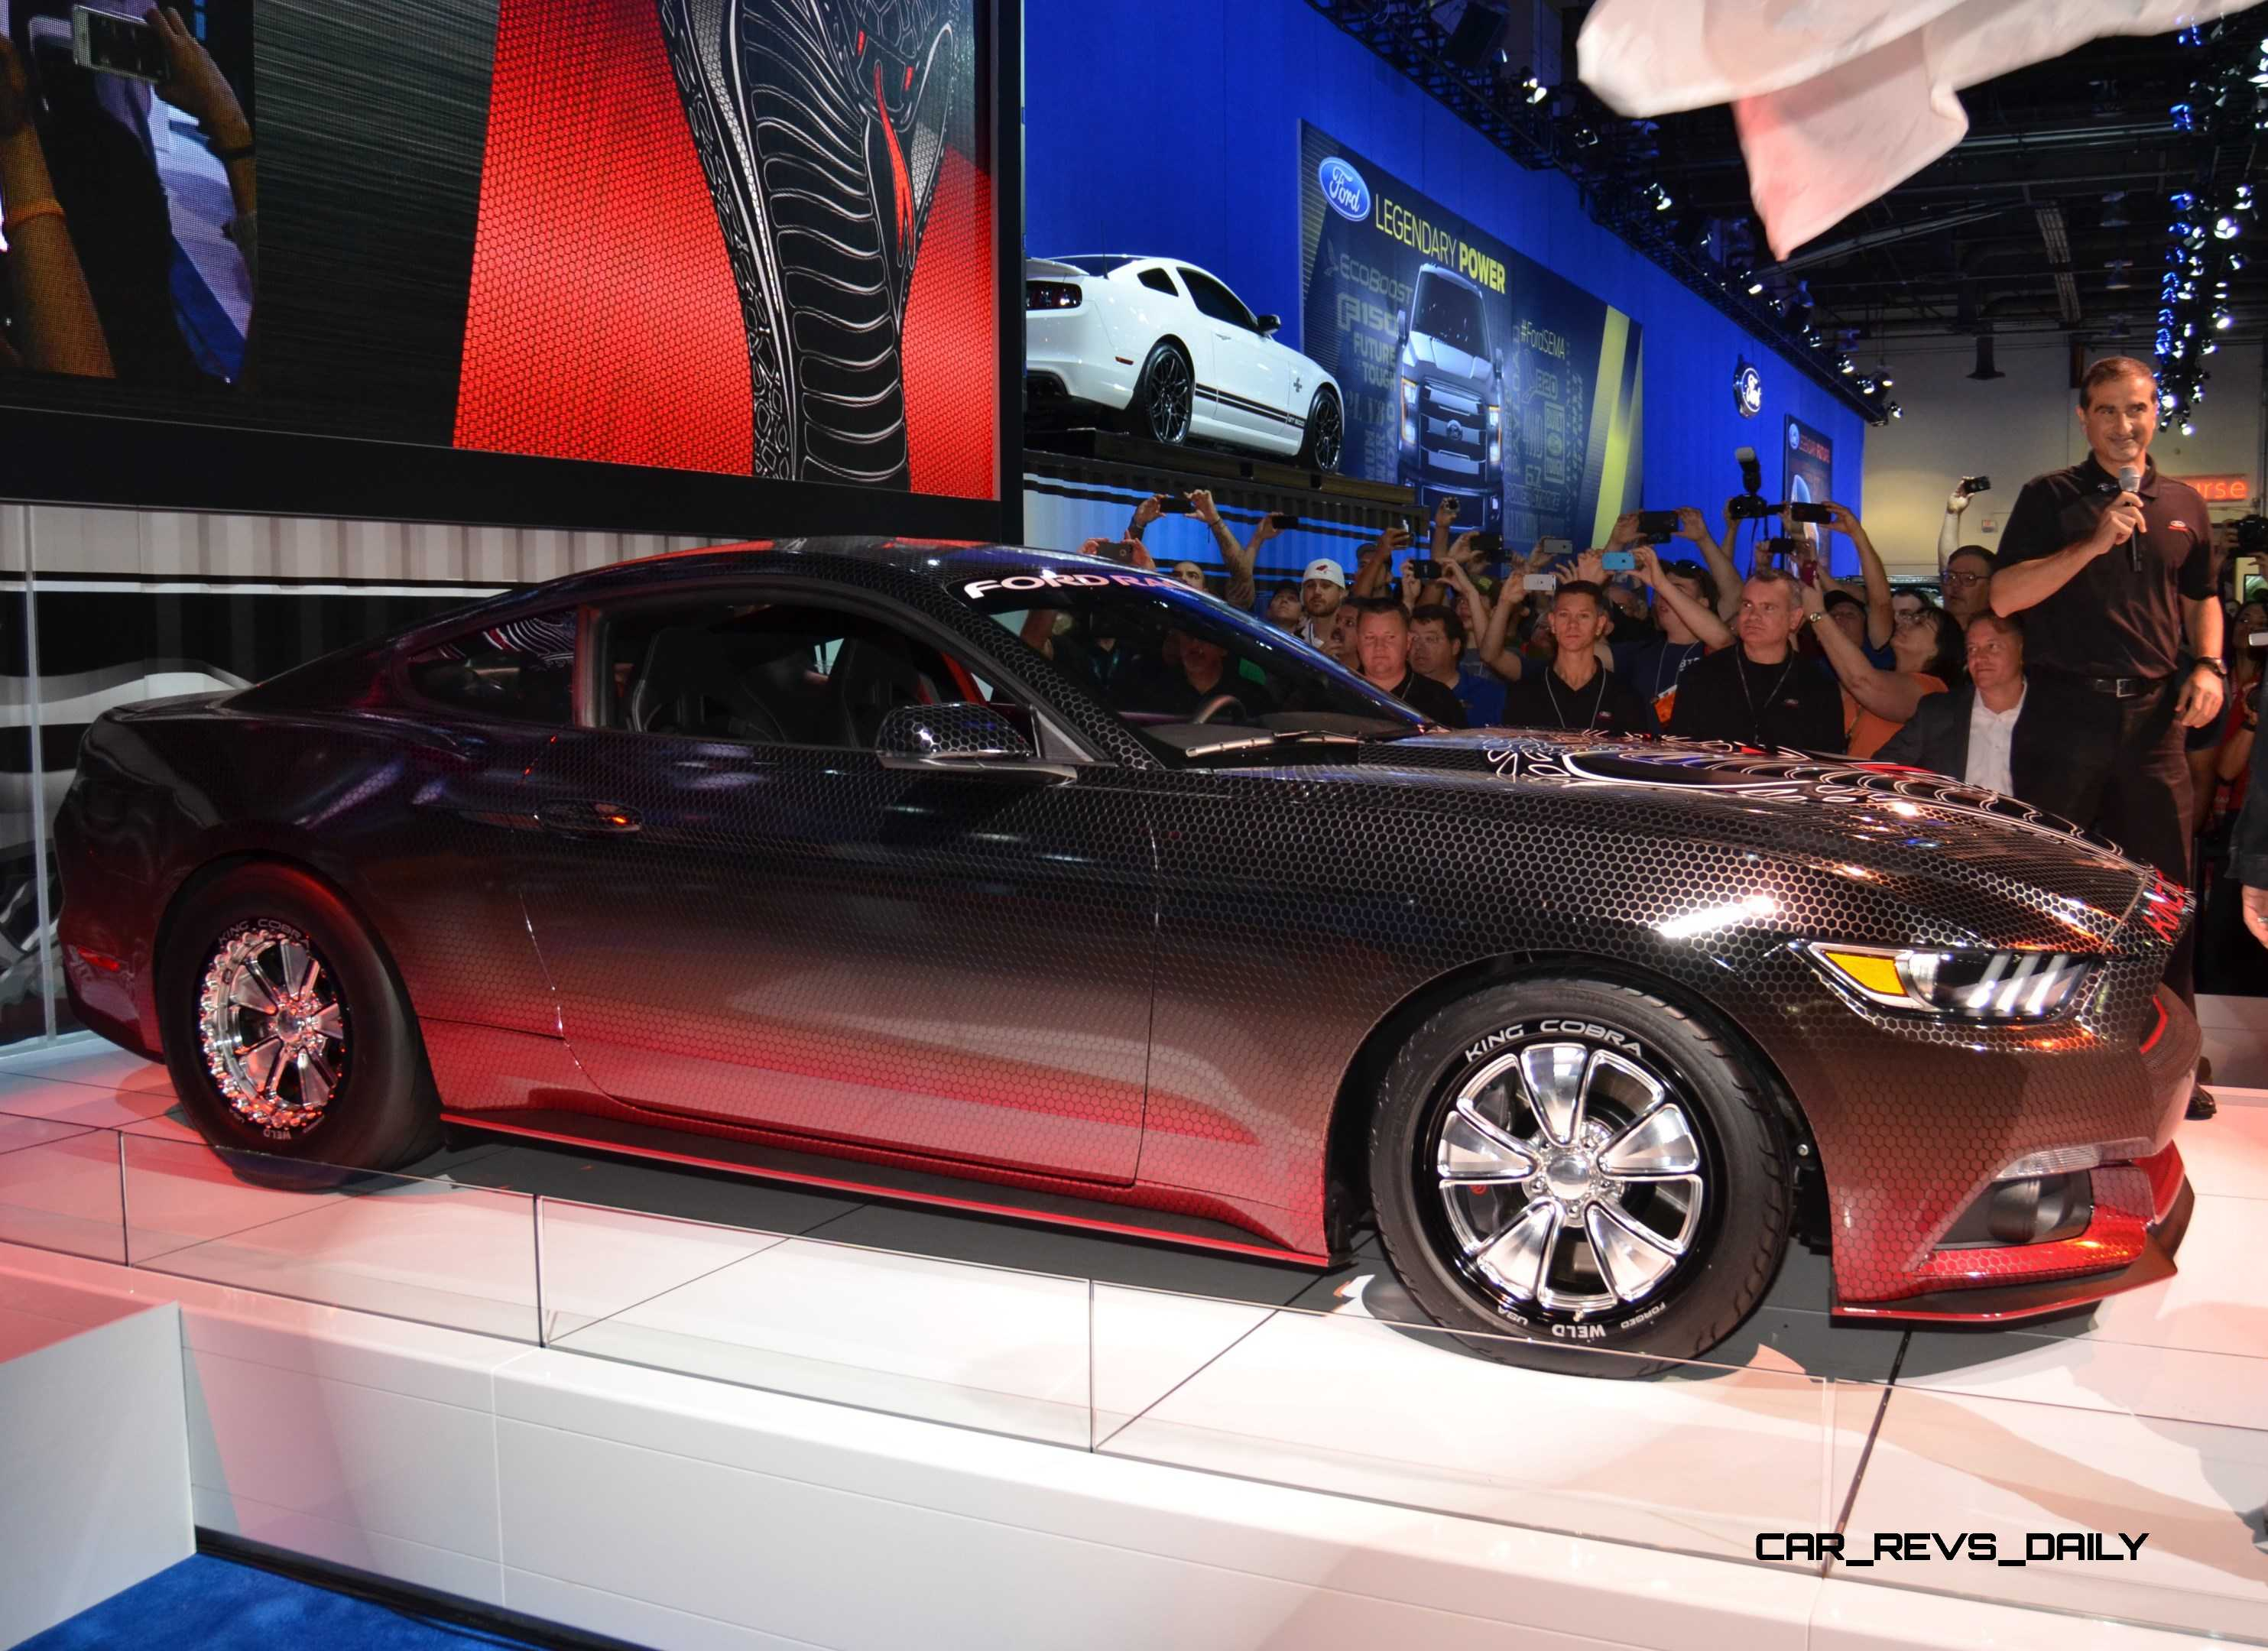 2015 ford mustang king cobra is 625hp factory parts upgrade list 5 - Ford Mustang King Cobra 2015